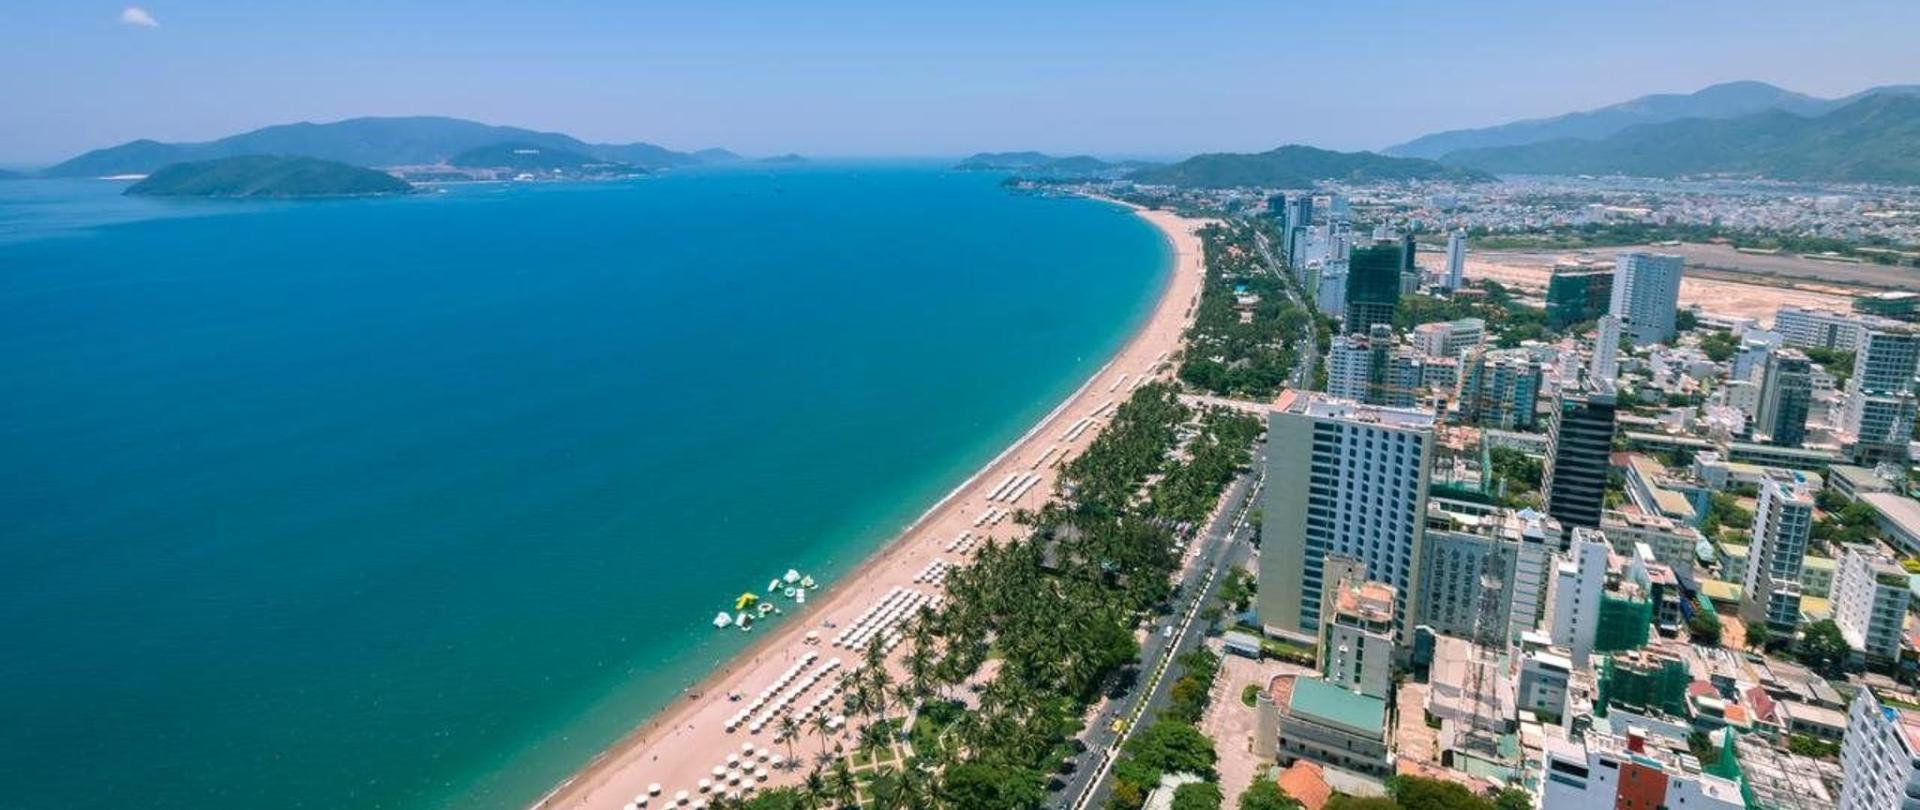 Nha Trang city from above